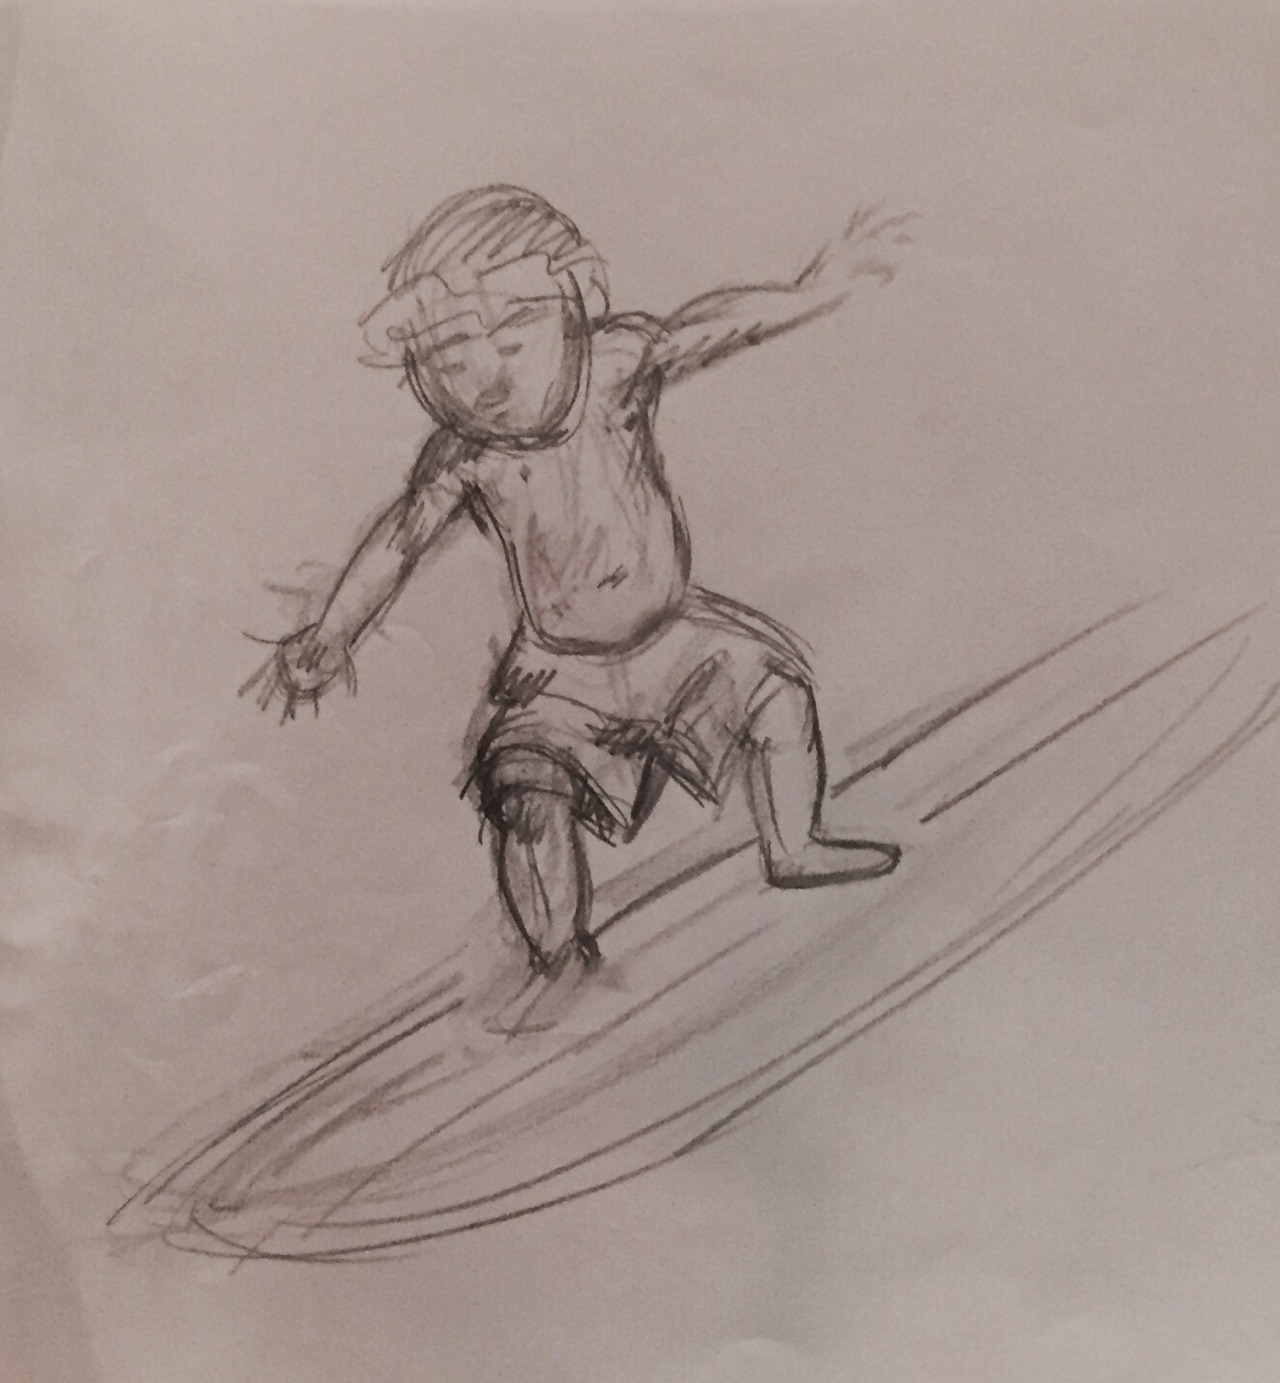 Hawian boy surfing